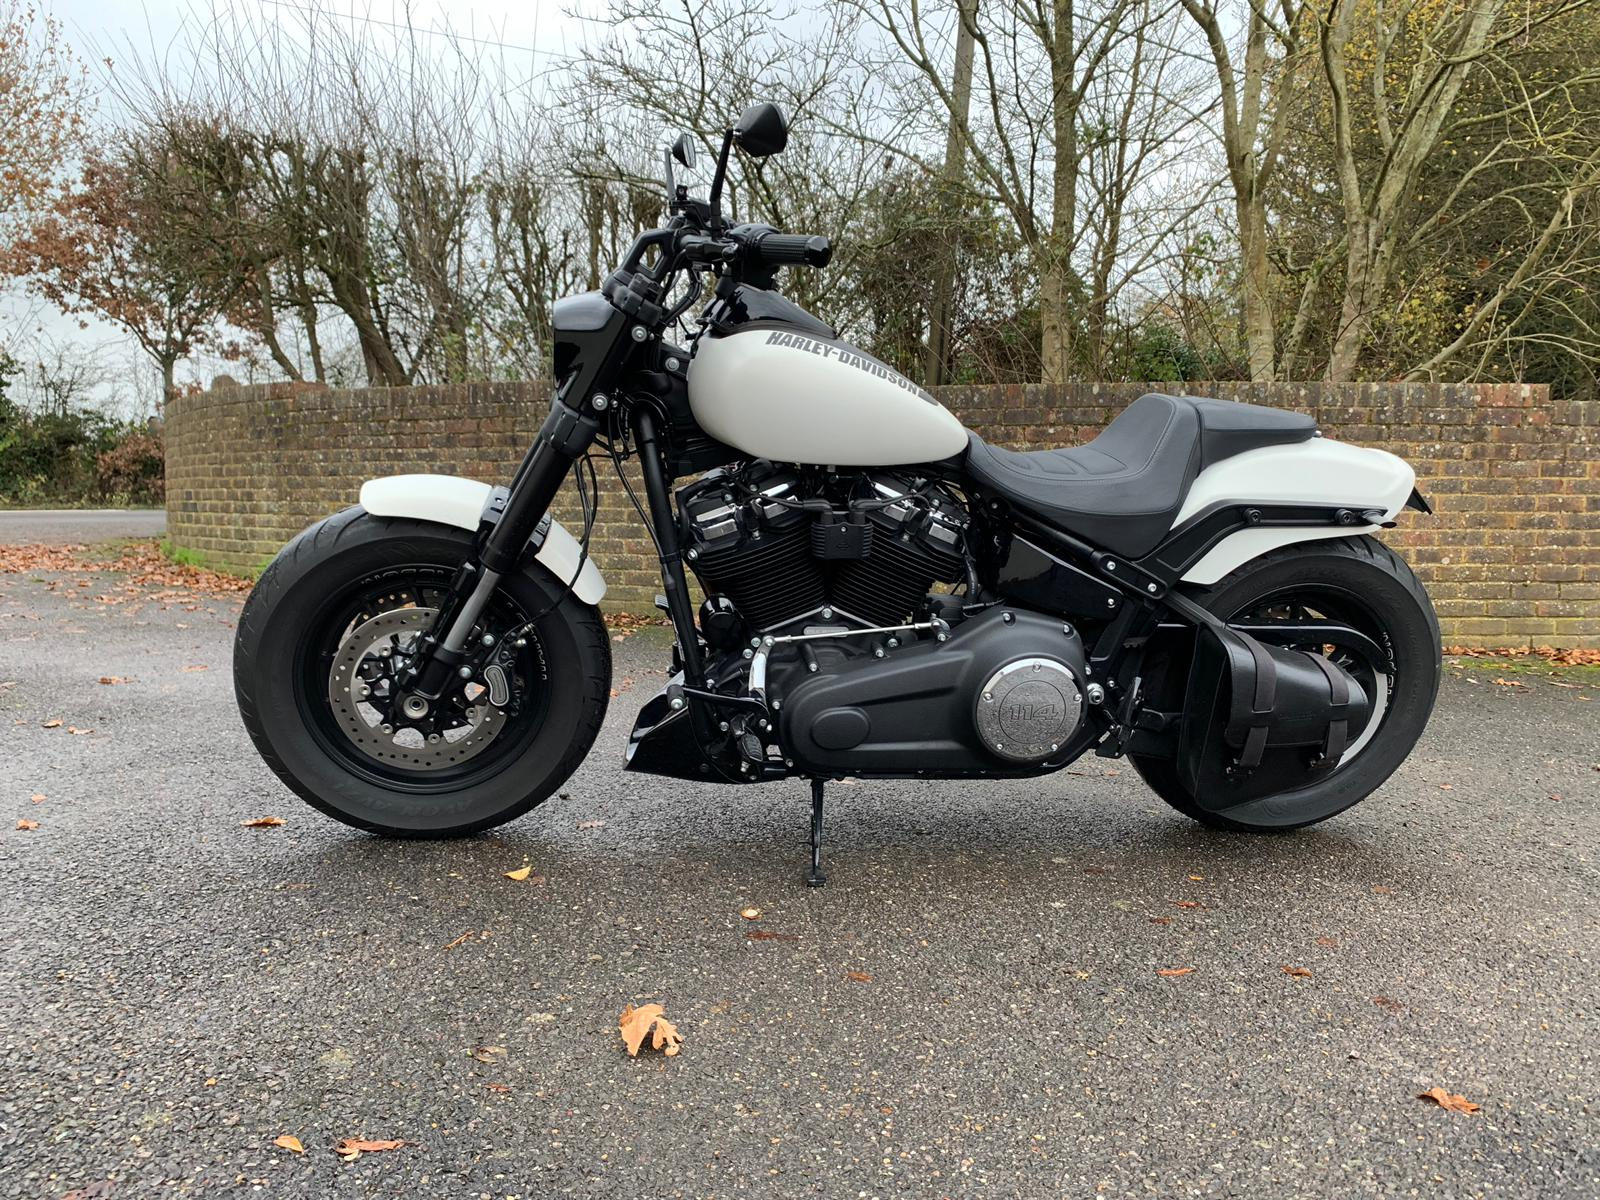 2018/19 softail chin spoiler / belly pan